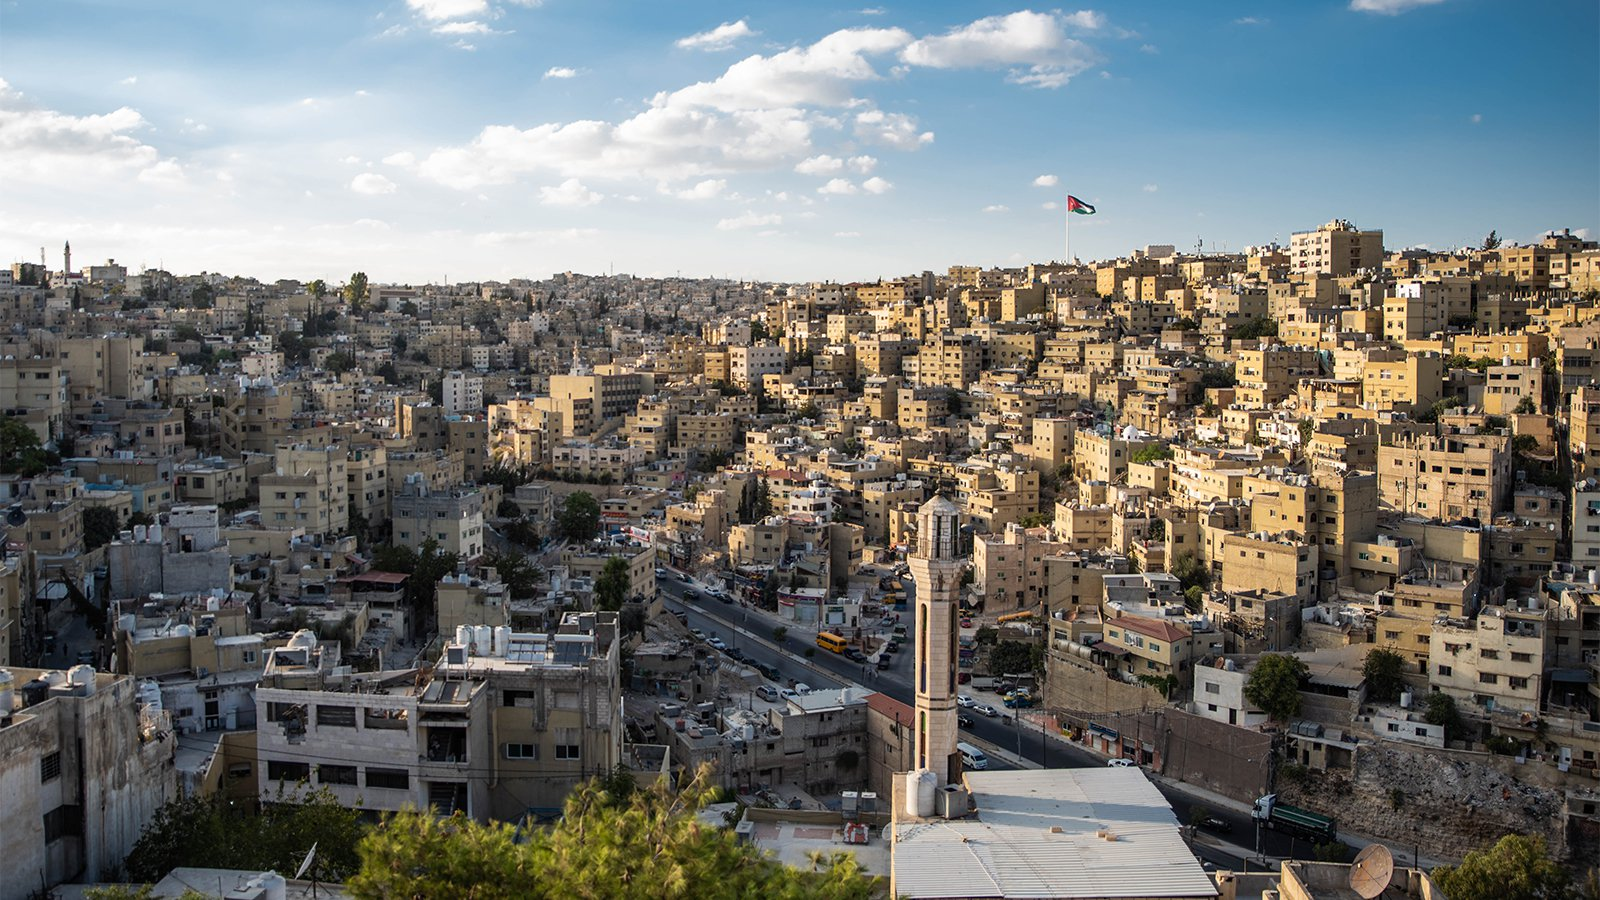 A Jordanian flag flies over the Amman, Jordan, skyline. Photo courtesy of Creative Commons via RNS.